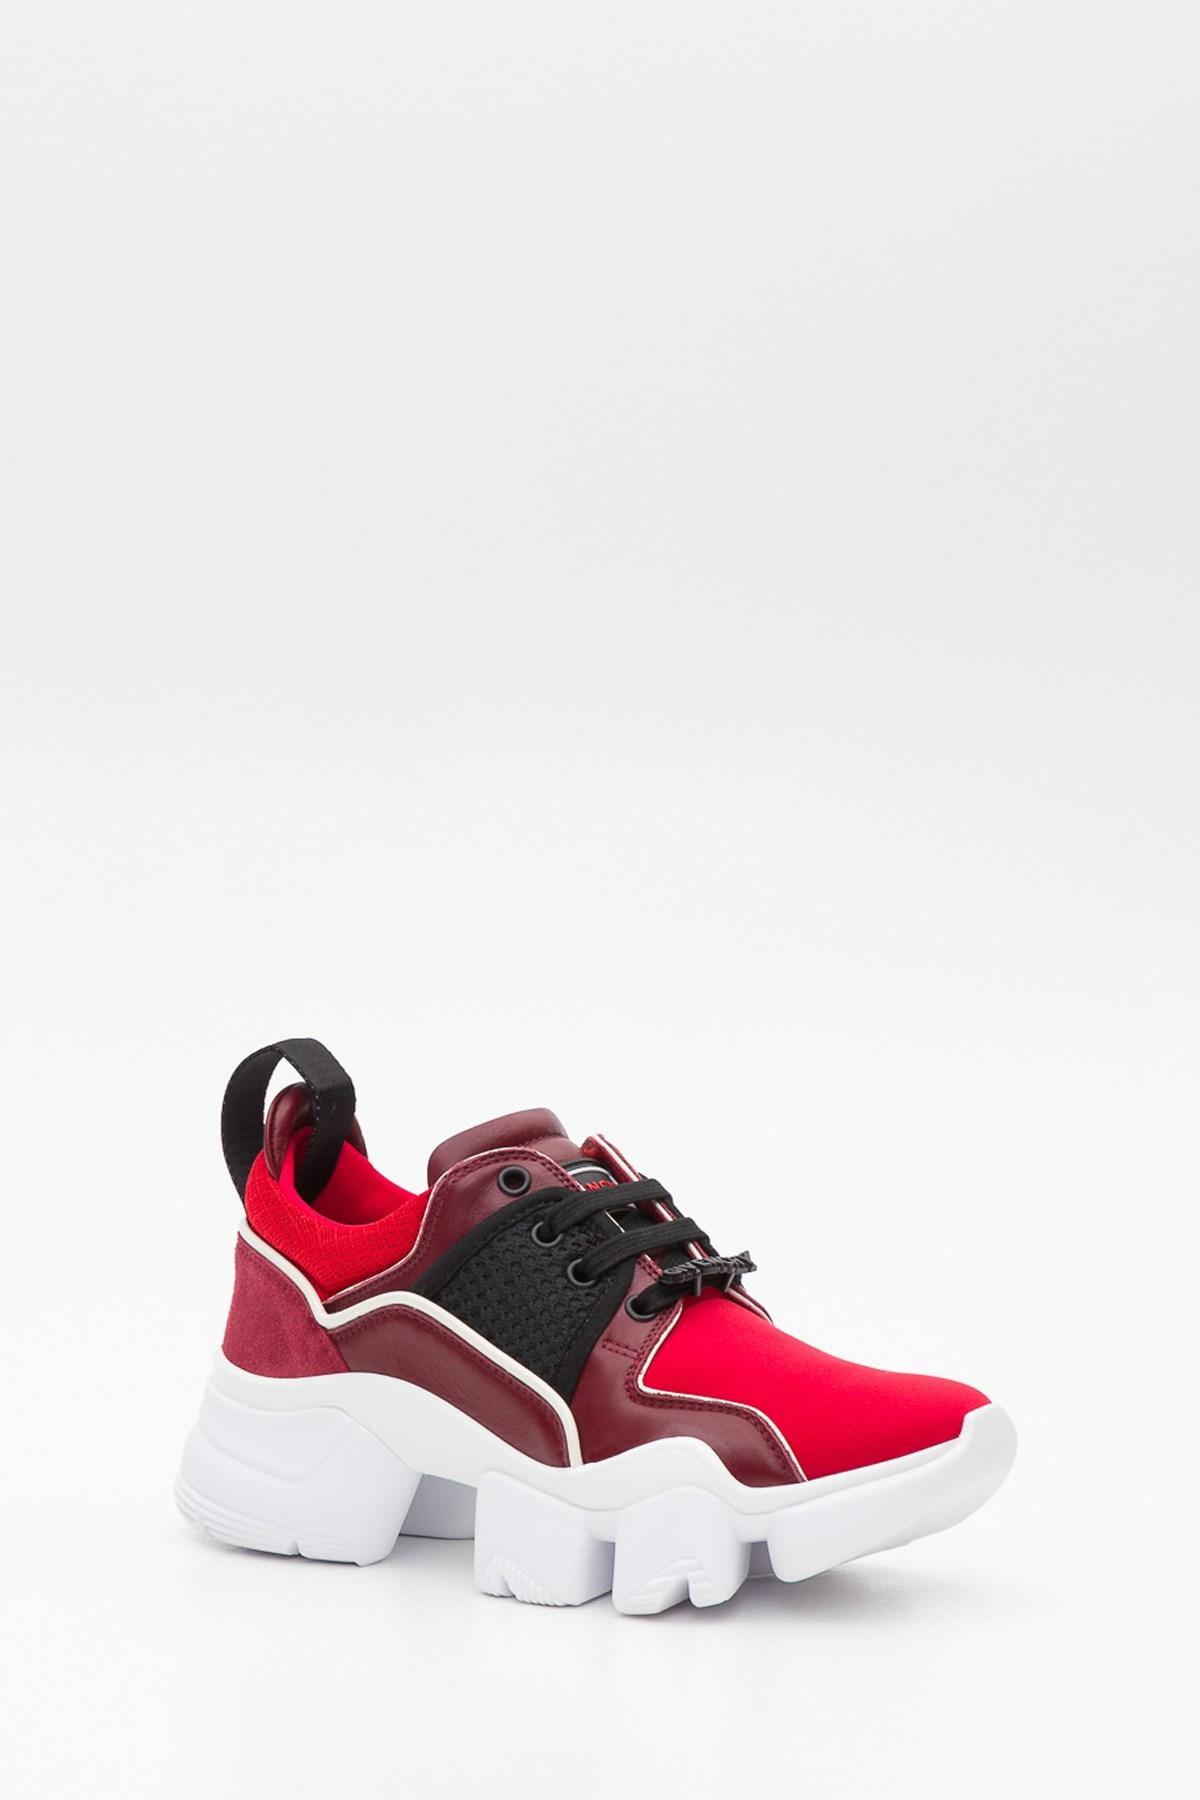 affcbf74fbb6 Givenchy - Red Low Jaw Leather-trimmed Sneakers - Lyst. View fullscreen